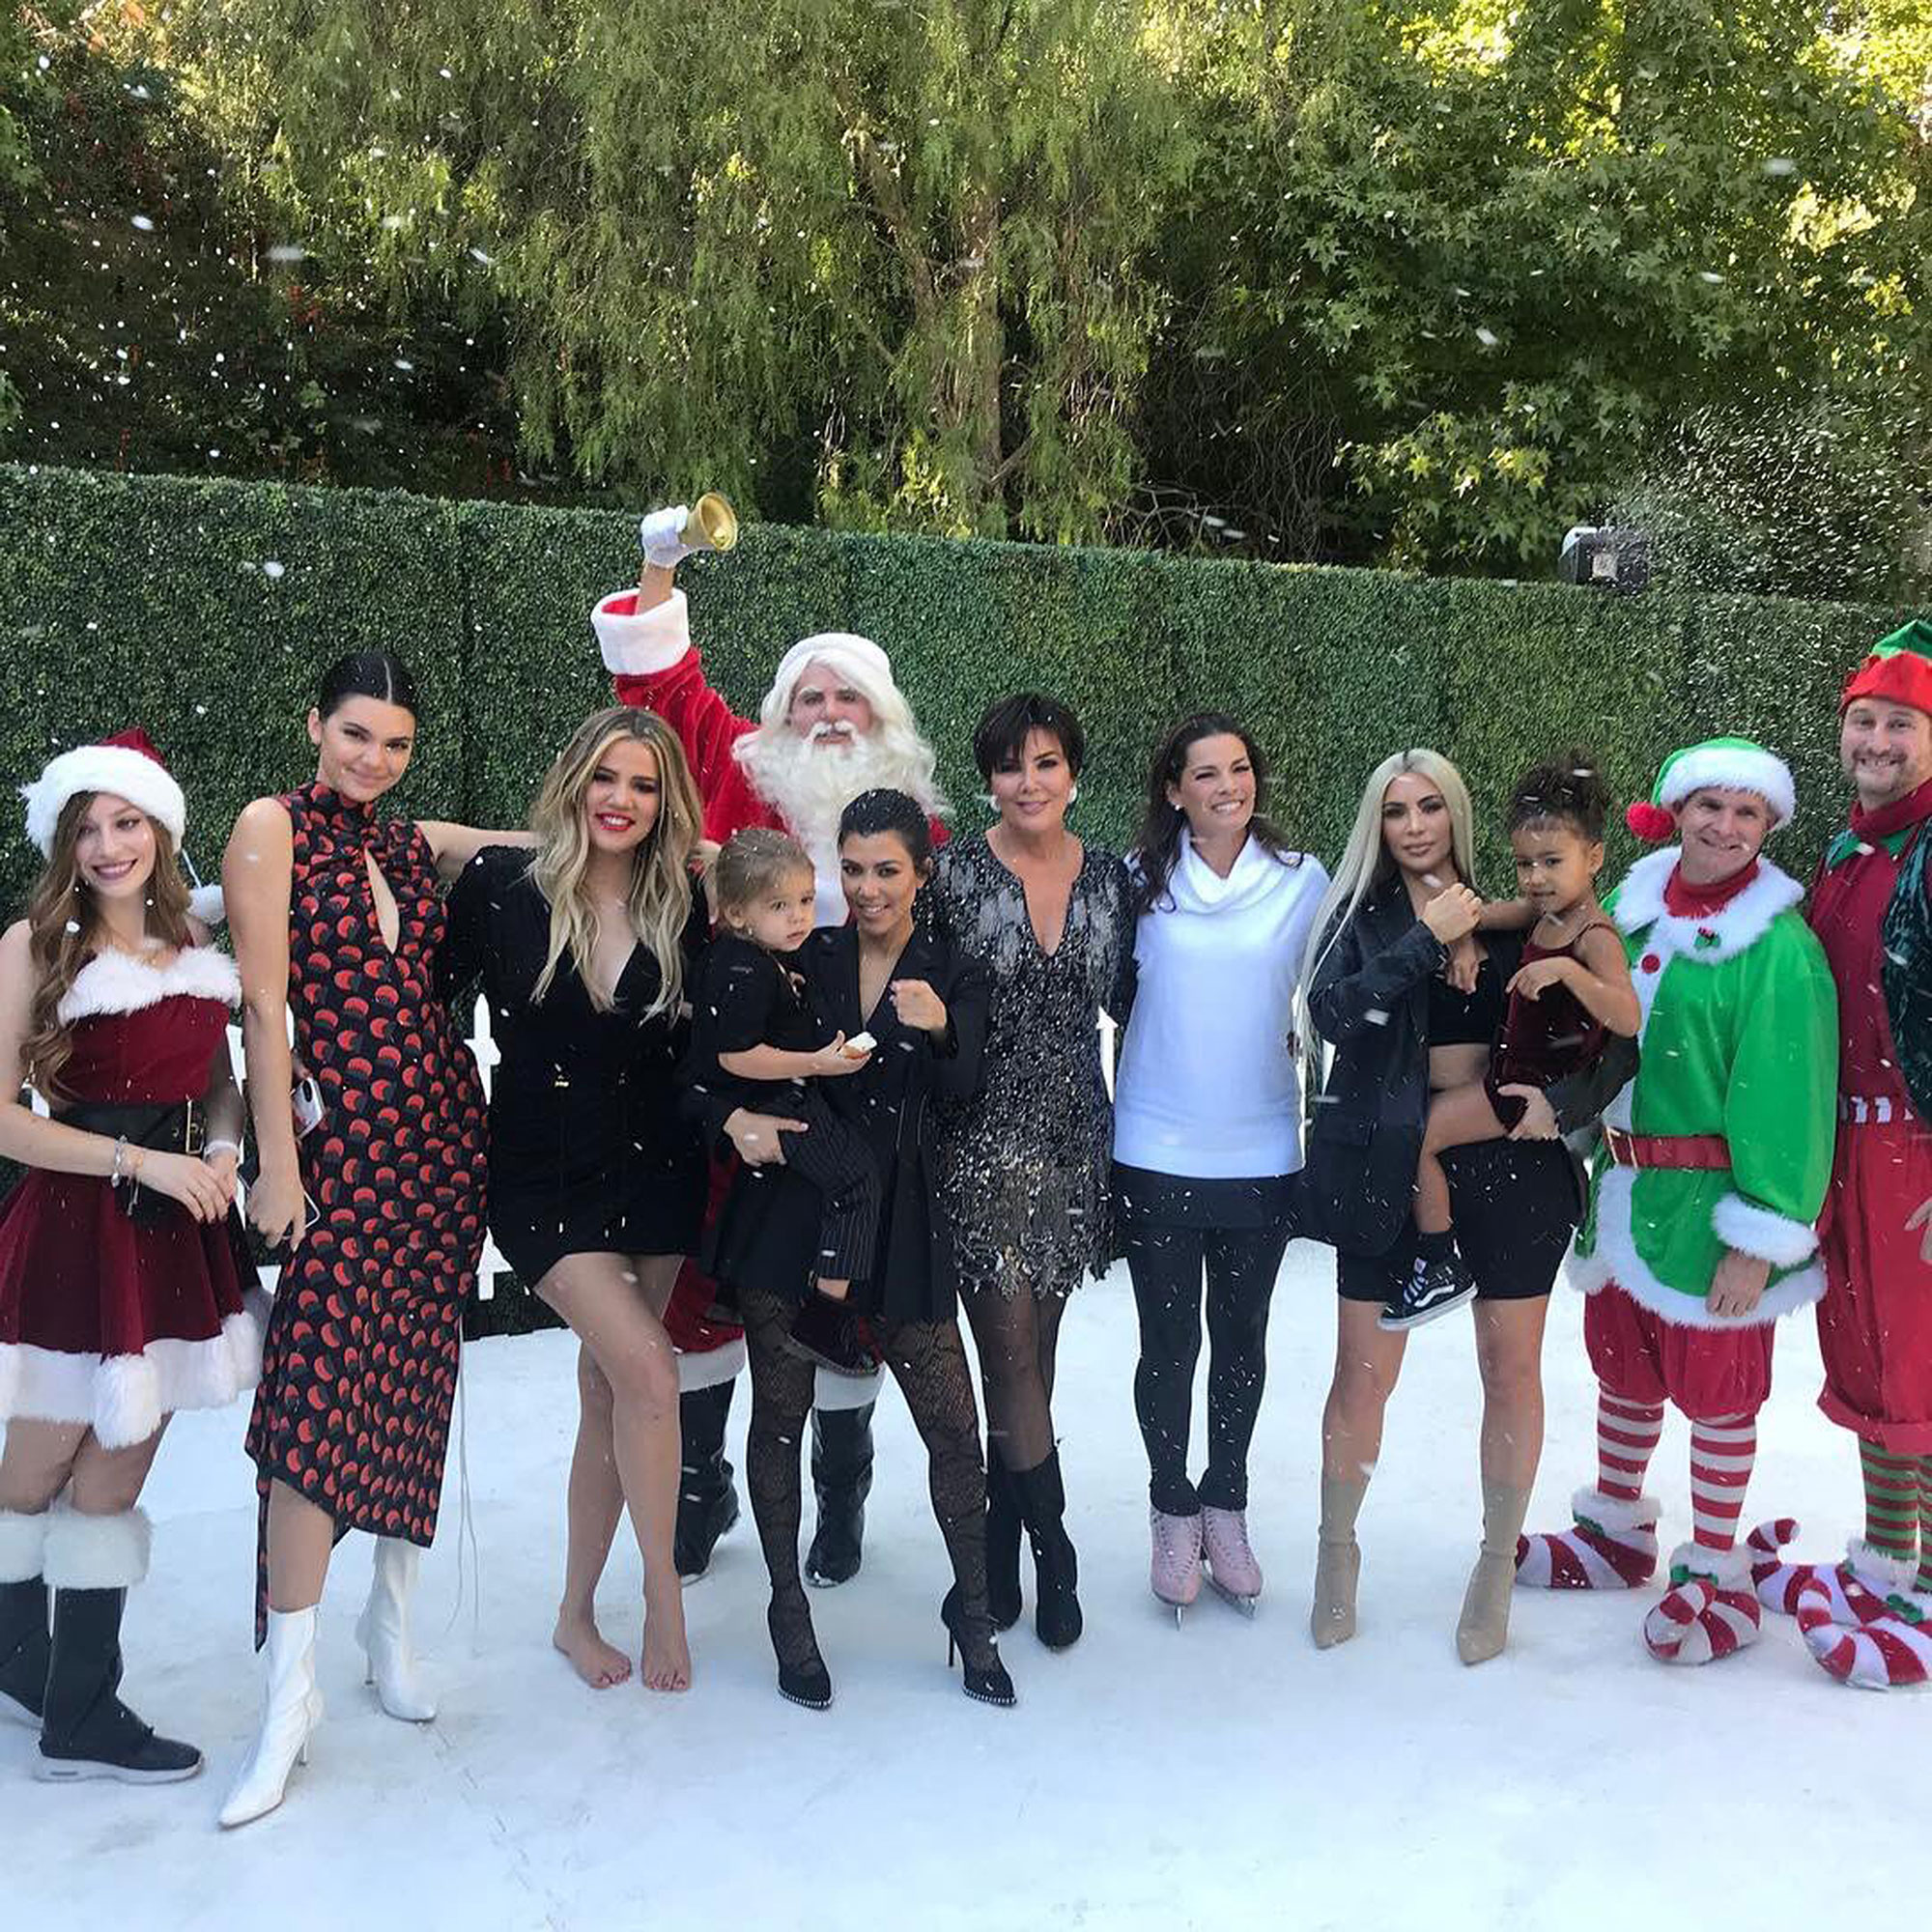 Karjenner Christmas Card 2020 Day 6! KarJenners Share New Peek at Christmas Card – Featuring